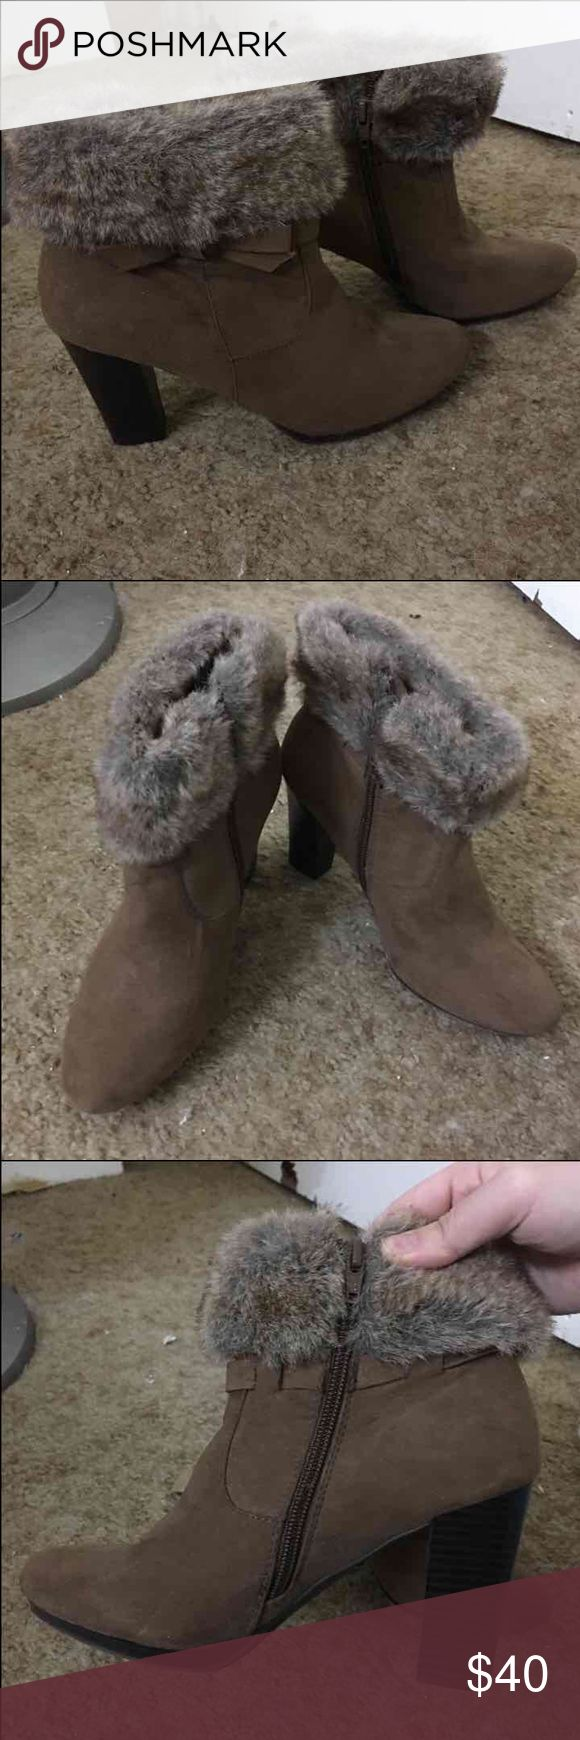 Fur ankle boots Worn once Shoes Ankle Boots & Booties